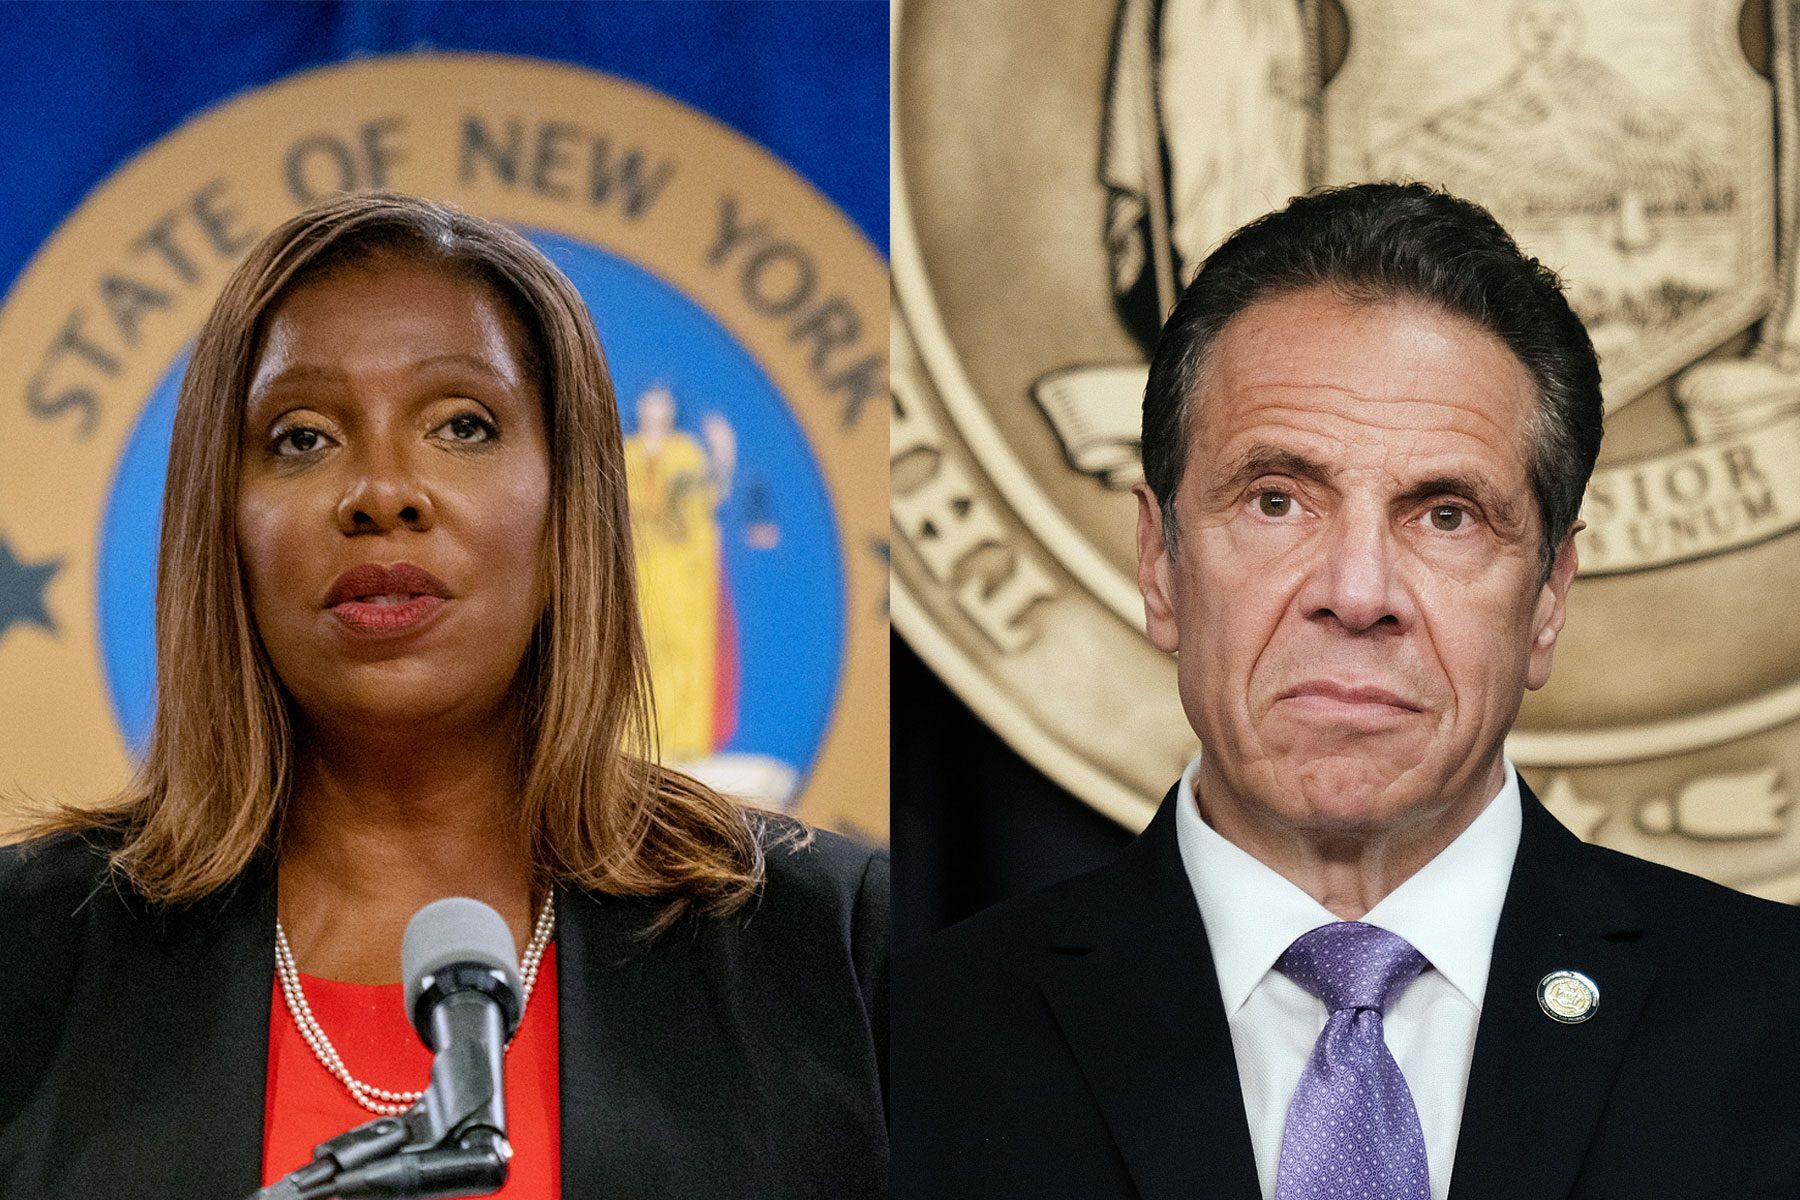 Diptych of New York Attorney General Letitia James and Ne York Governor Andrew Cuomo